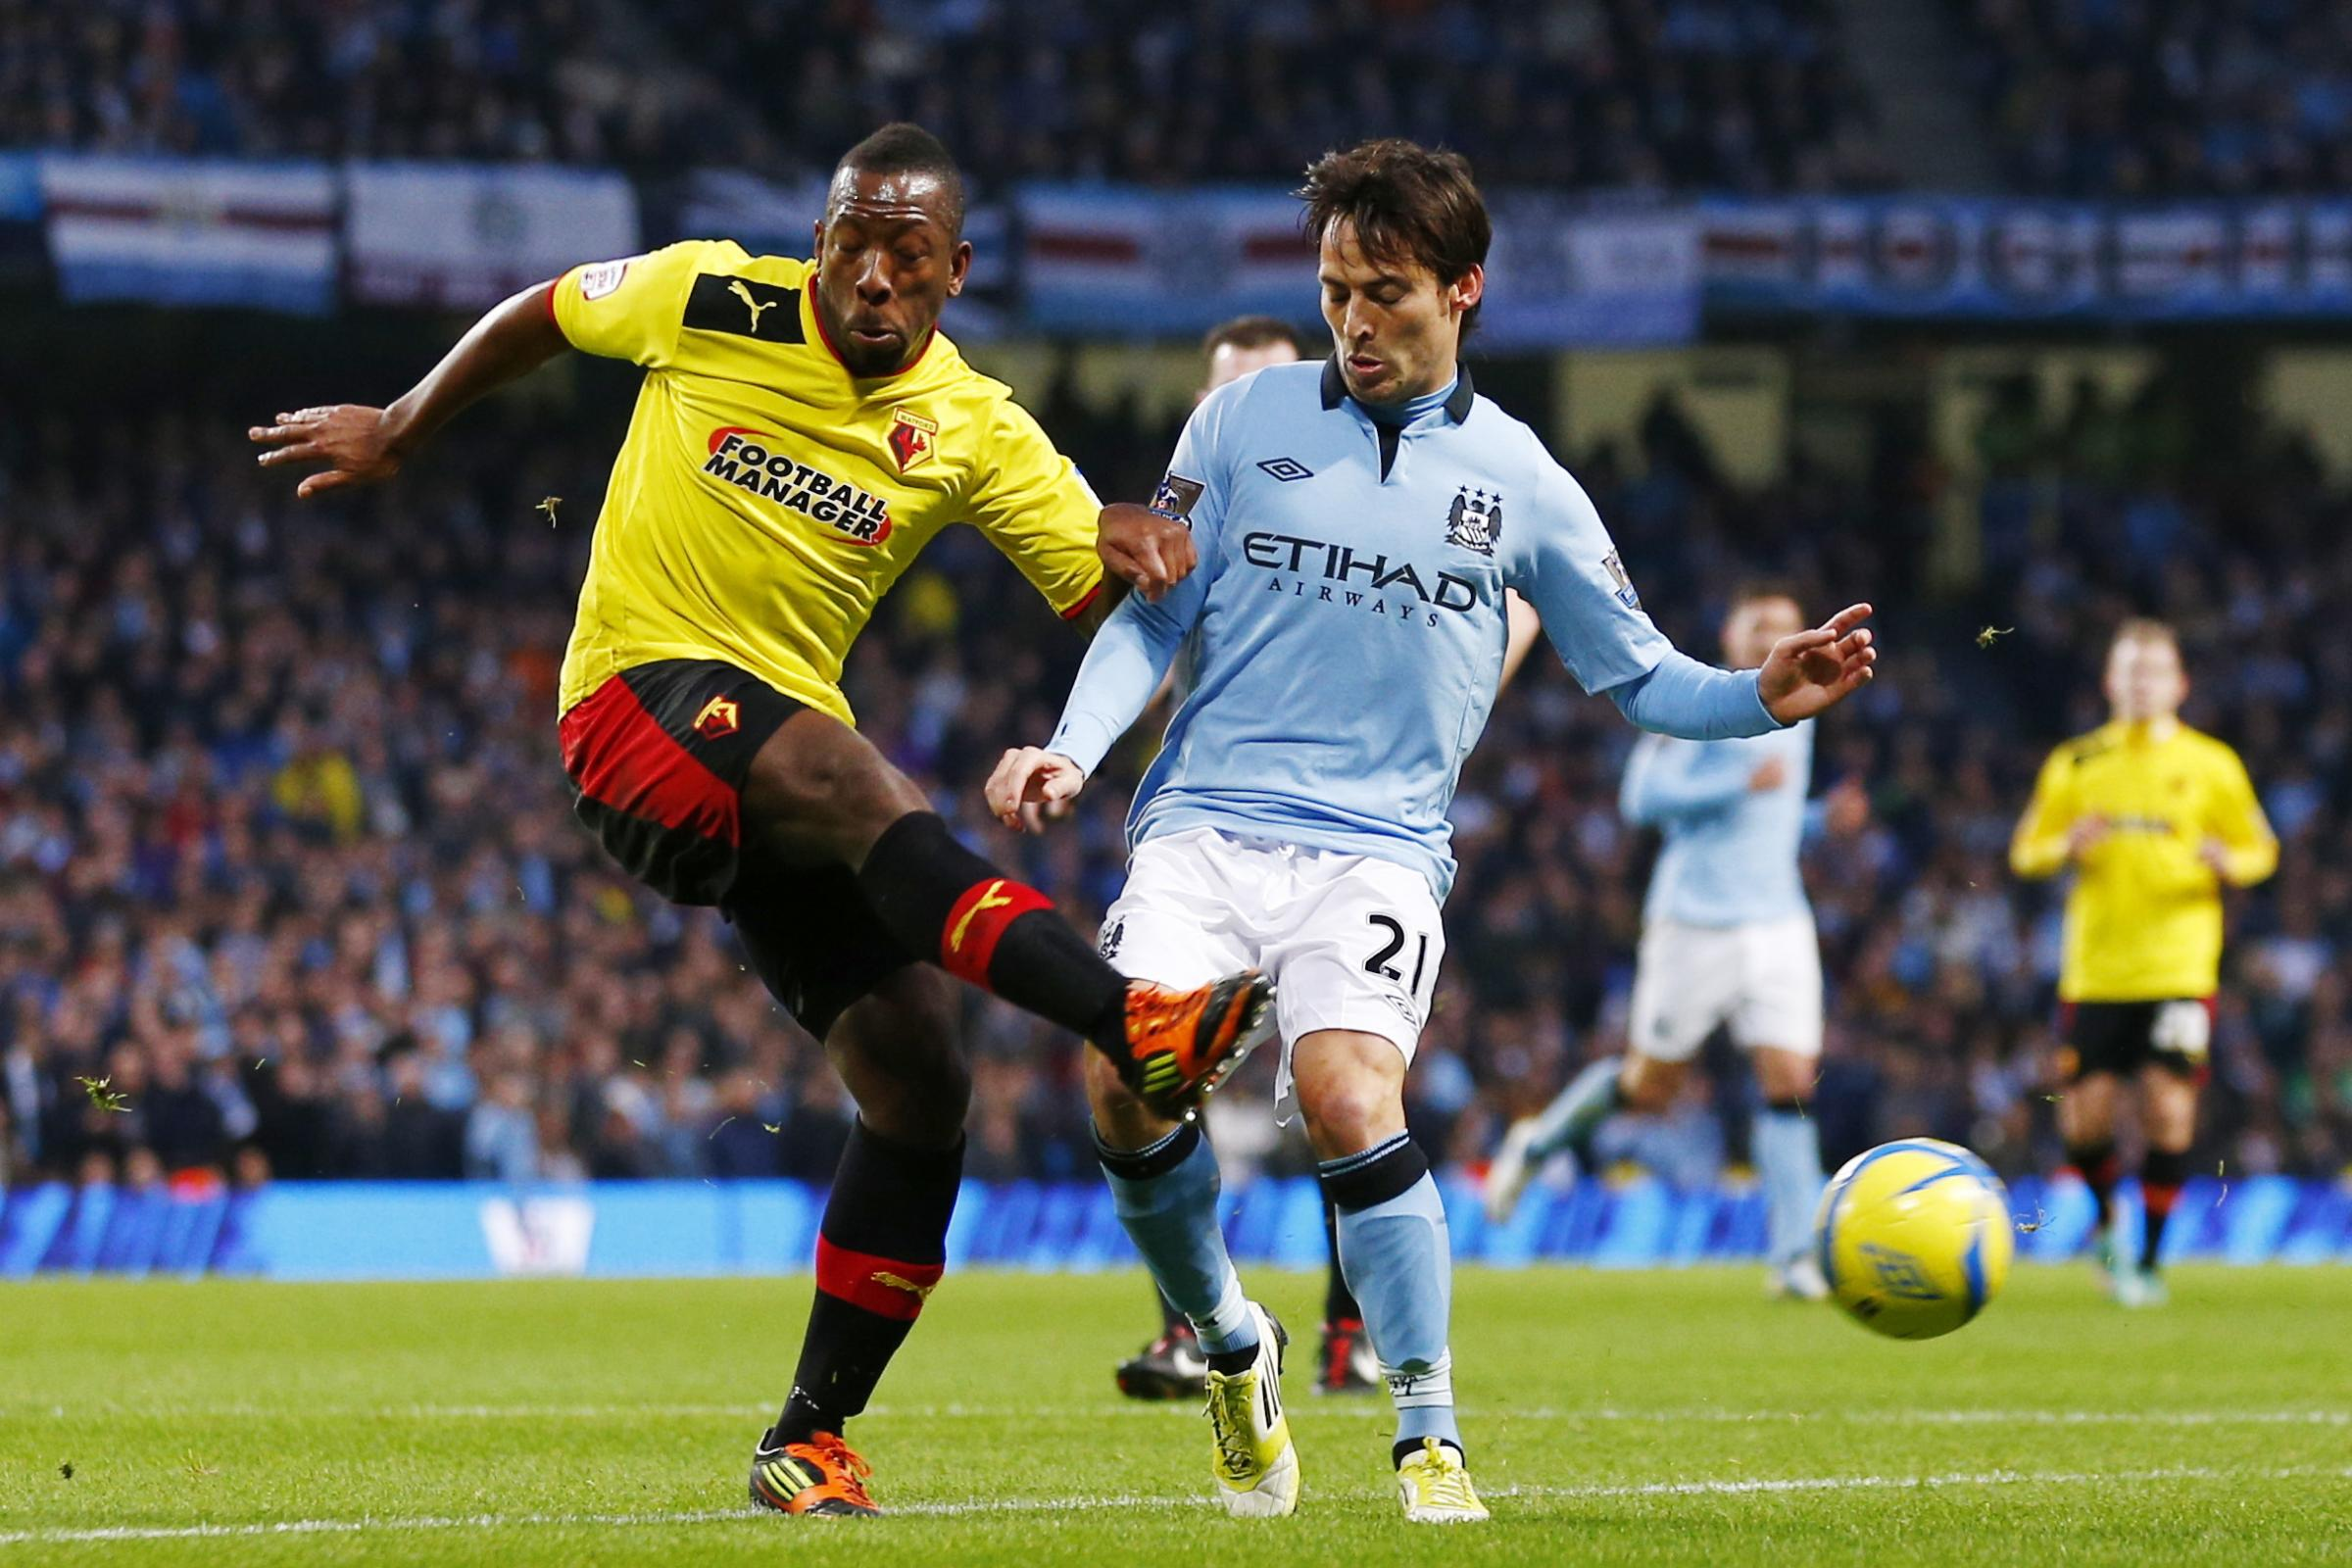 Lloyd Doyley, Marvin Sordell, Tommy Smith and Graham Stack to play for Watford in Wealdstone testimonial